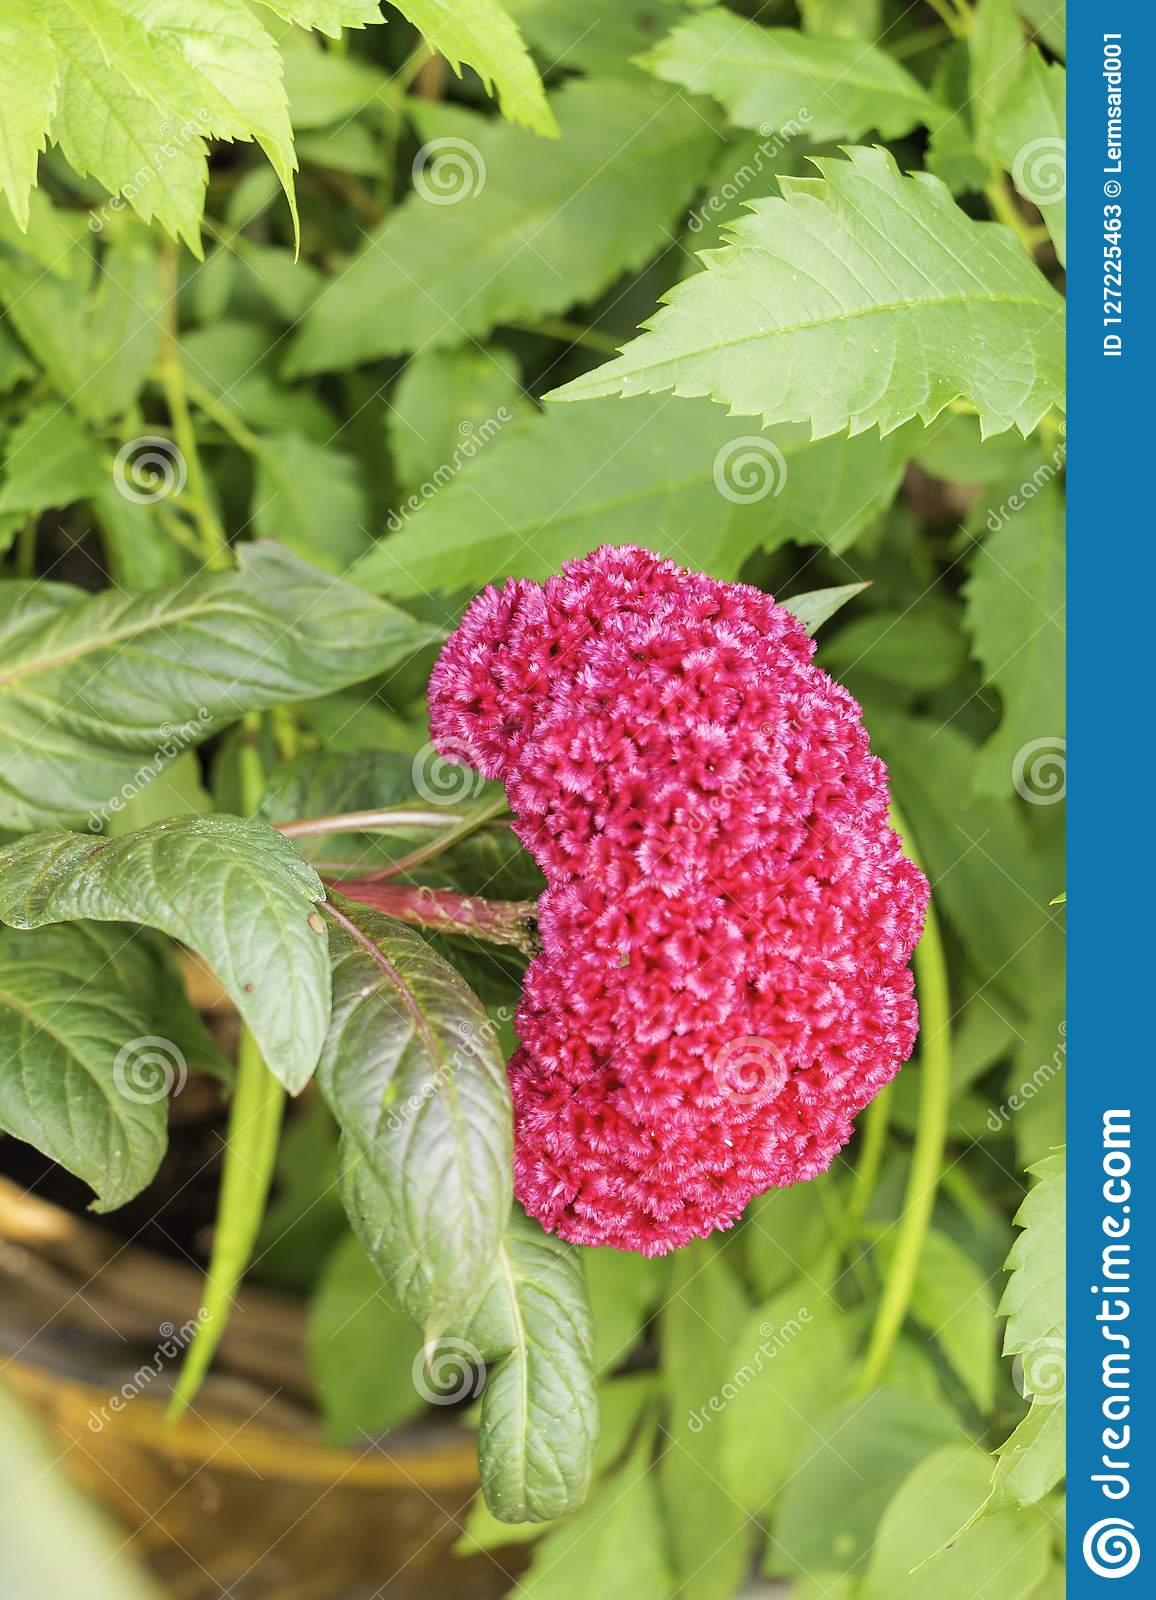 Pink Celosia and green leaf in the flowerpot.